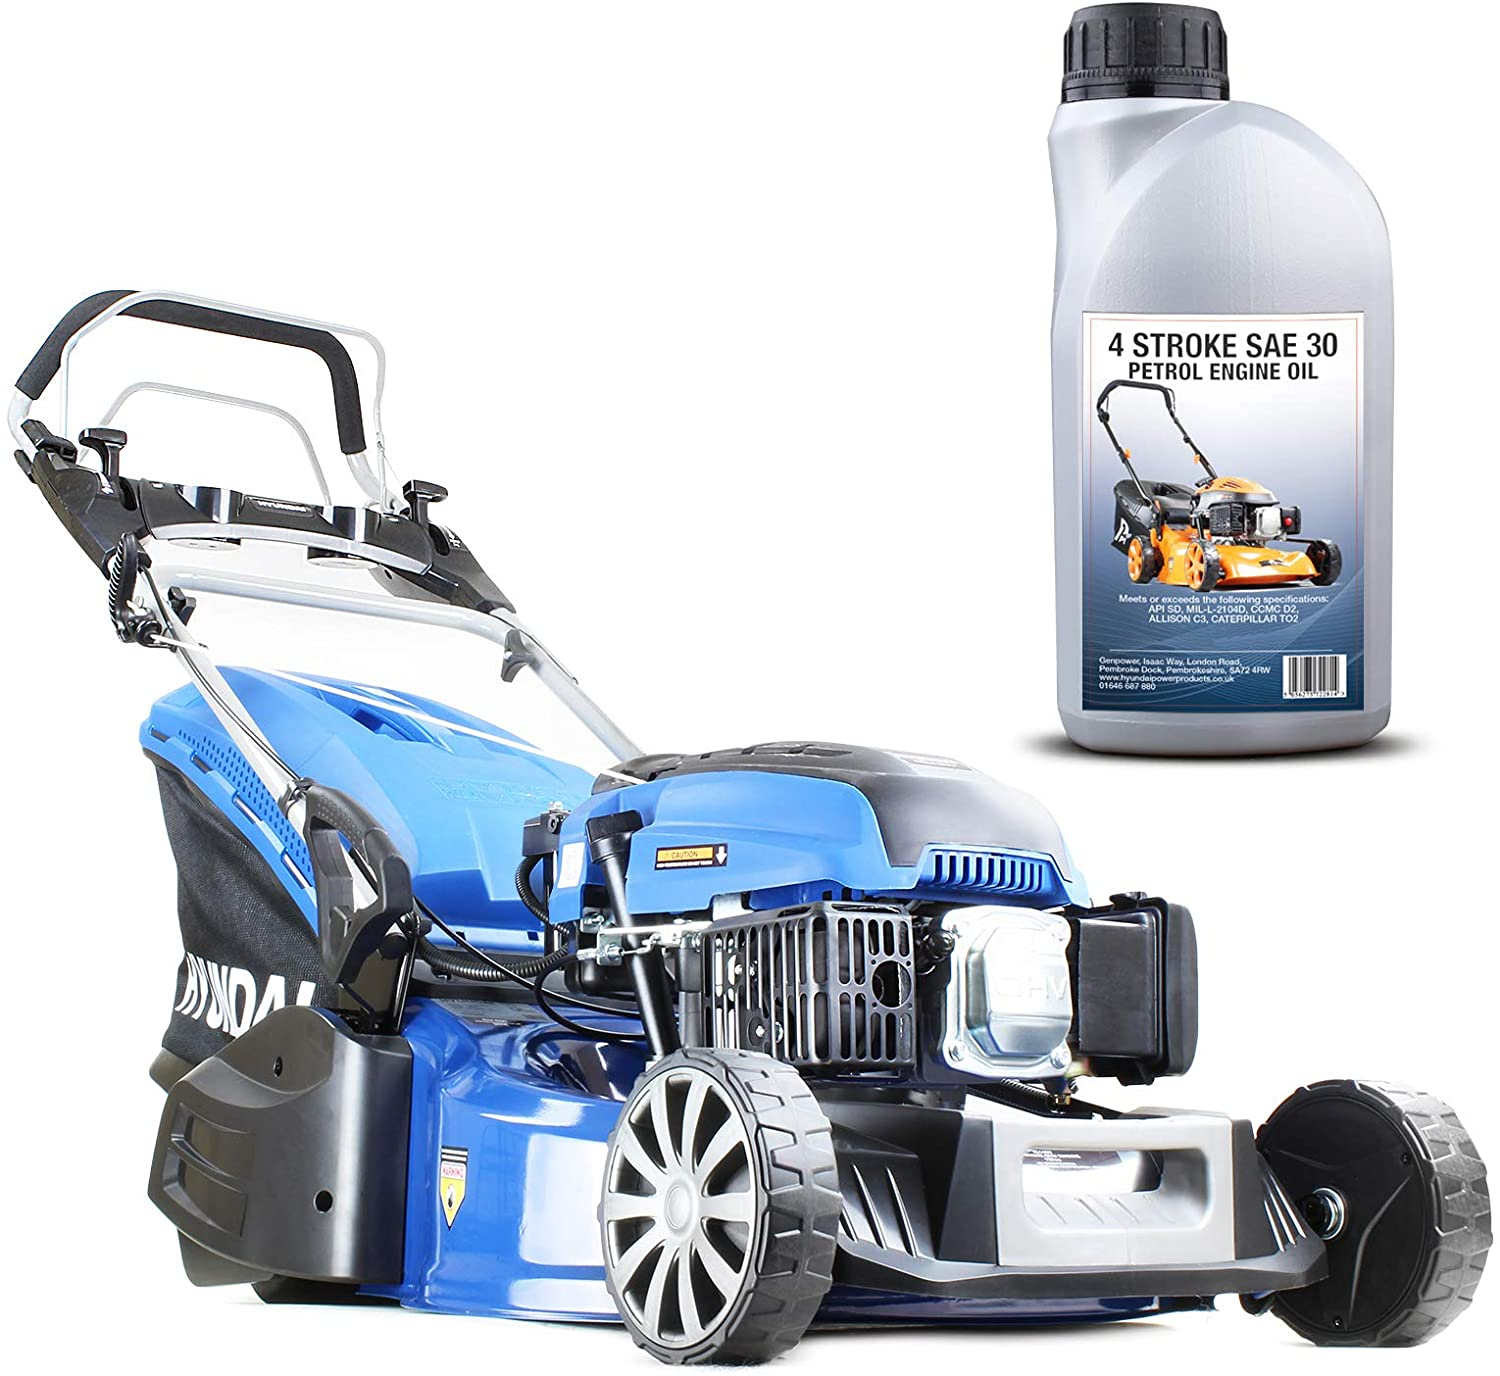 Hyundai Petrol Rear Roller Lawnmower